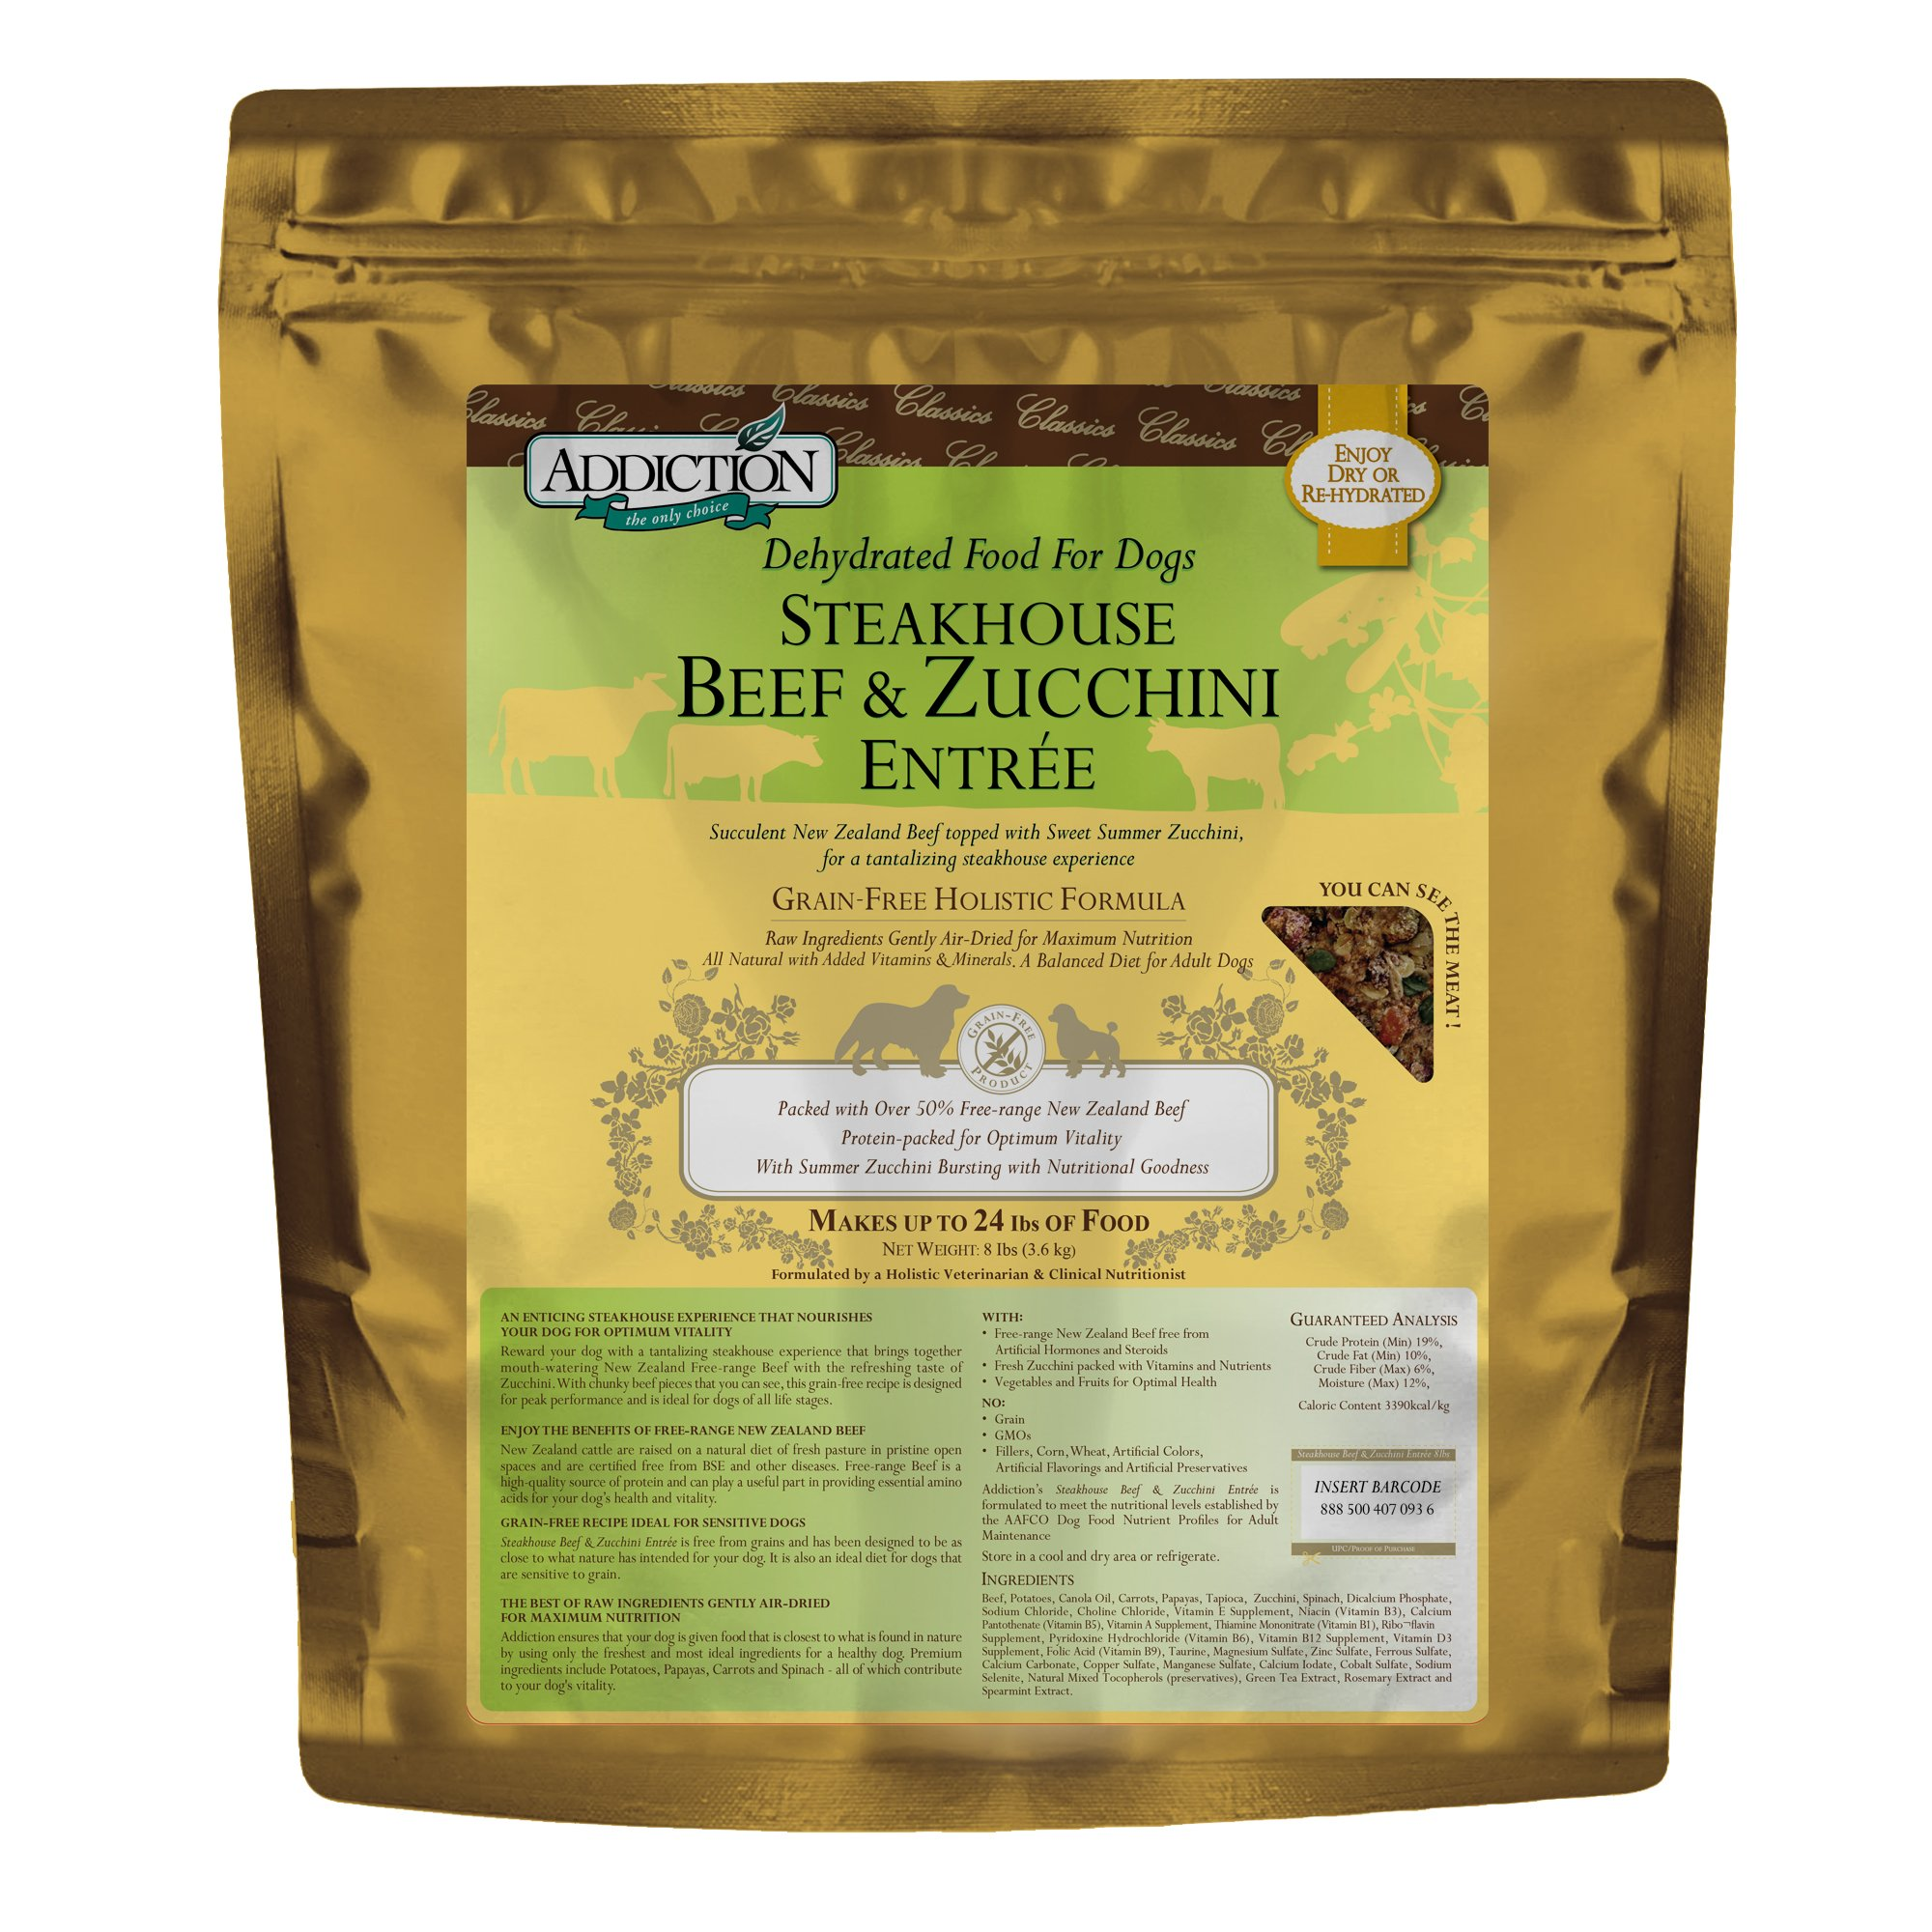 Addiction Steakhouse Beef & Zucchini Grain Free Dehydrated Dog Food, 8 Lb. by Addiction Pet Foods